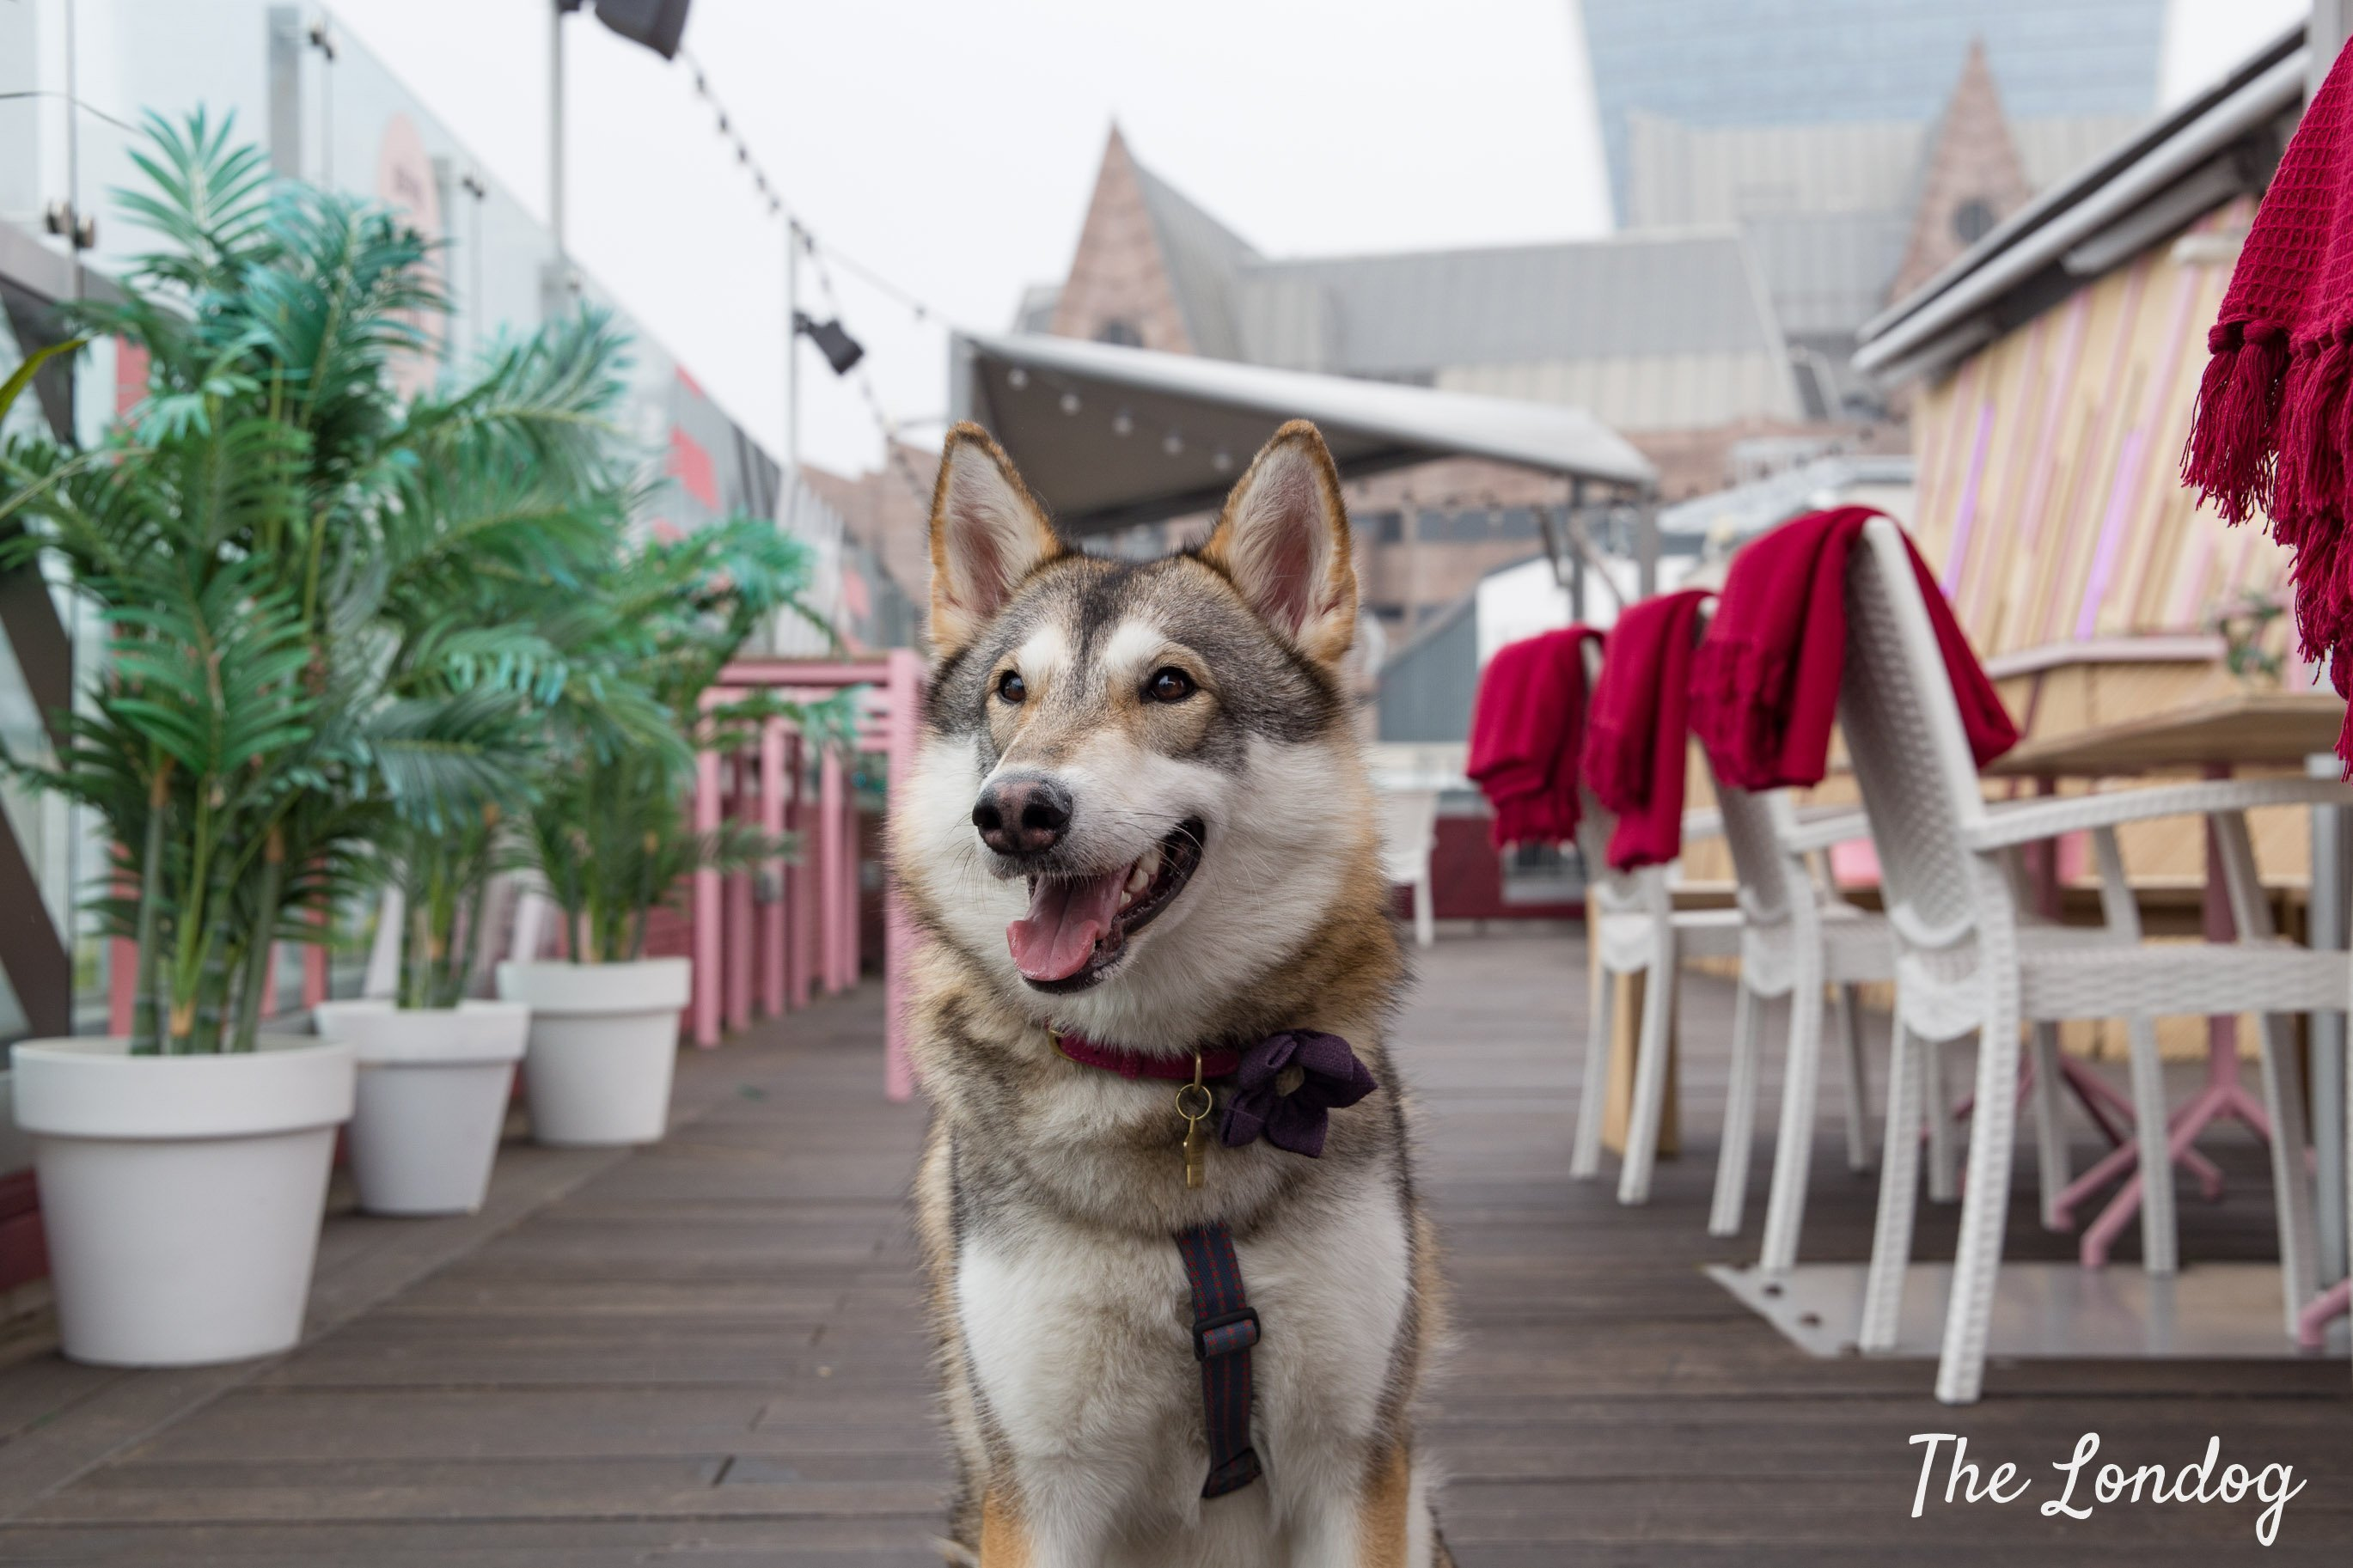 Dog on deck at Savage Garden rooftop between plants and tables with Walkie-Talkie on the background